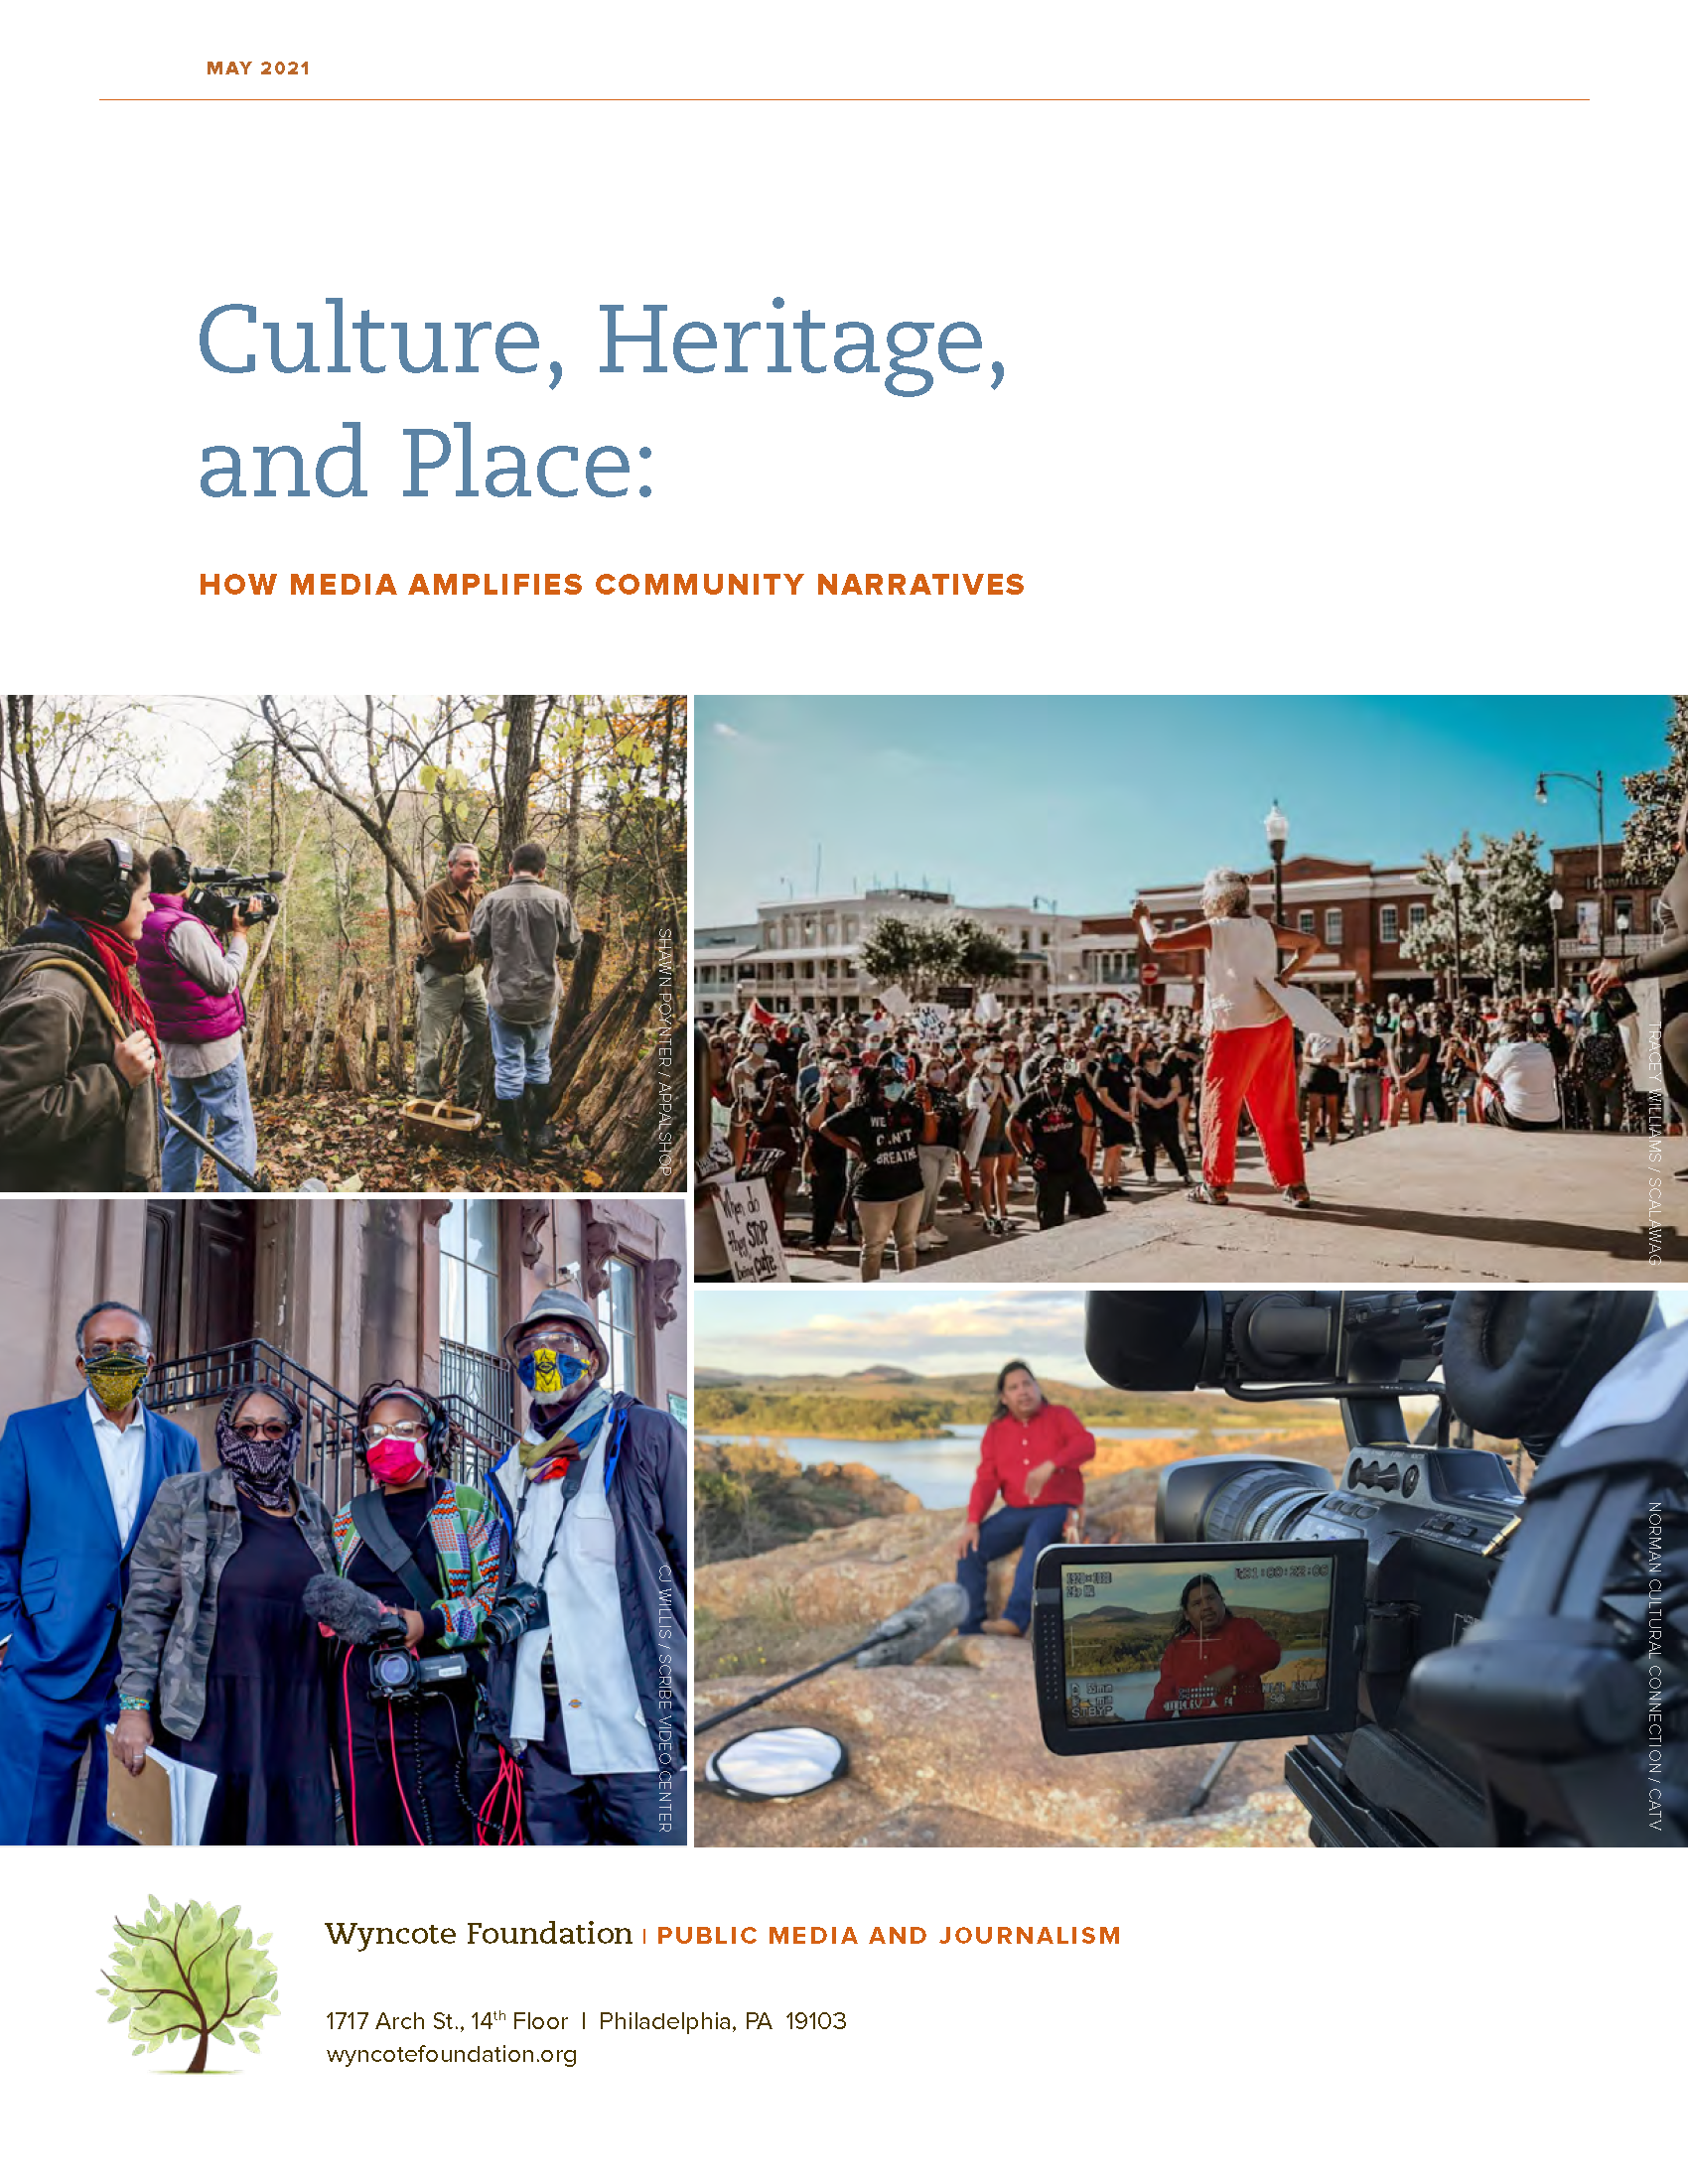 Culture, Heritage, and Place: How Media Amplifies Community Narrative